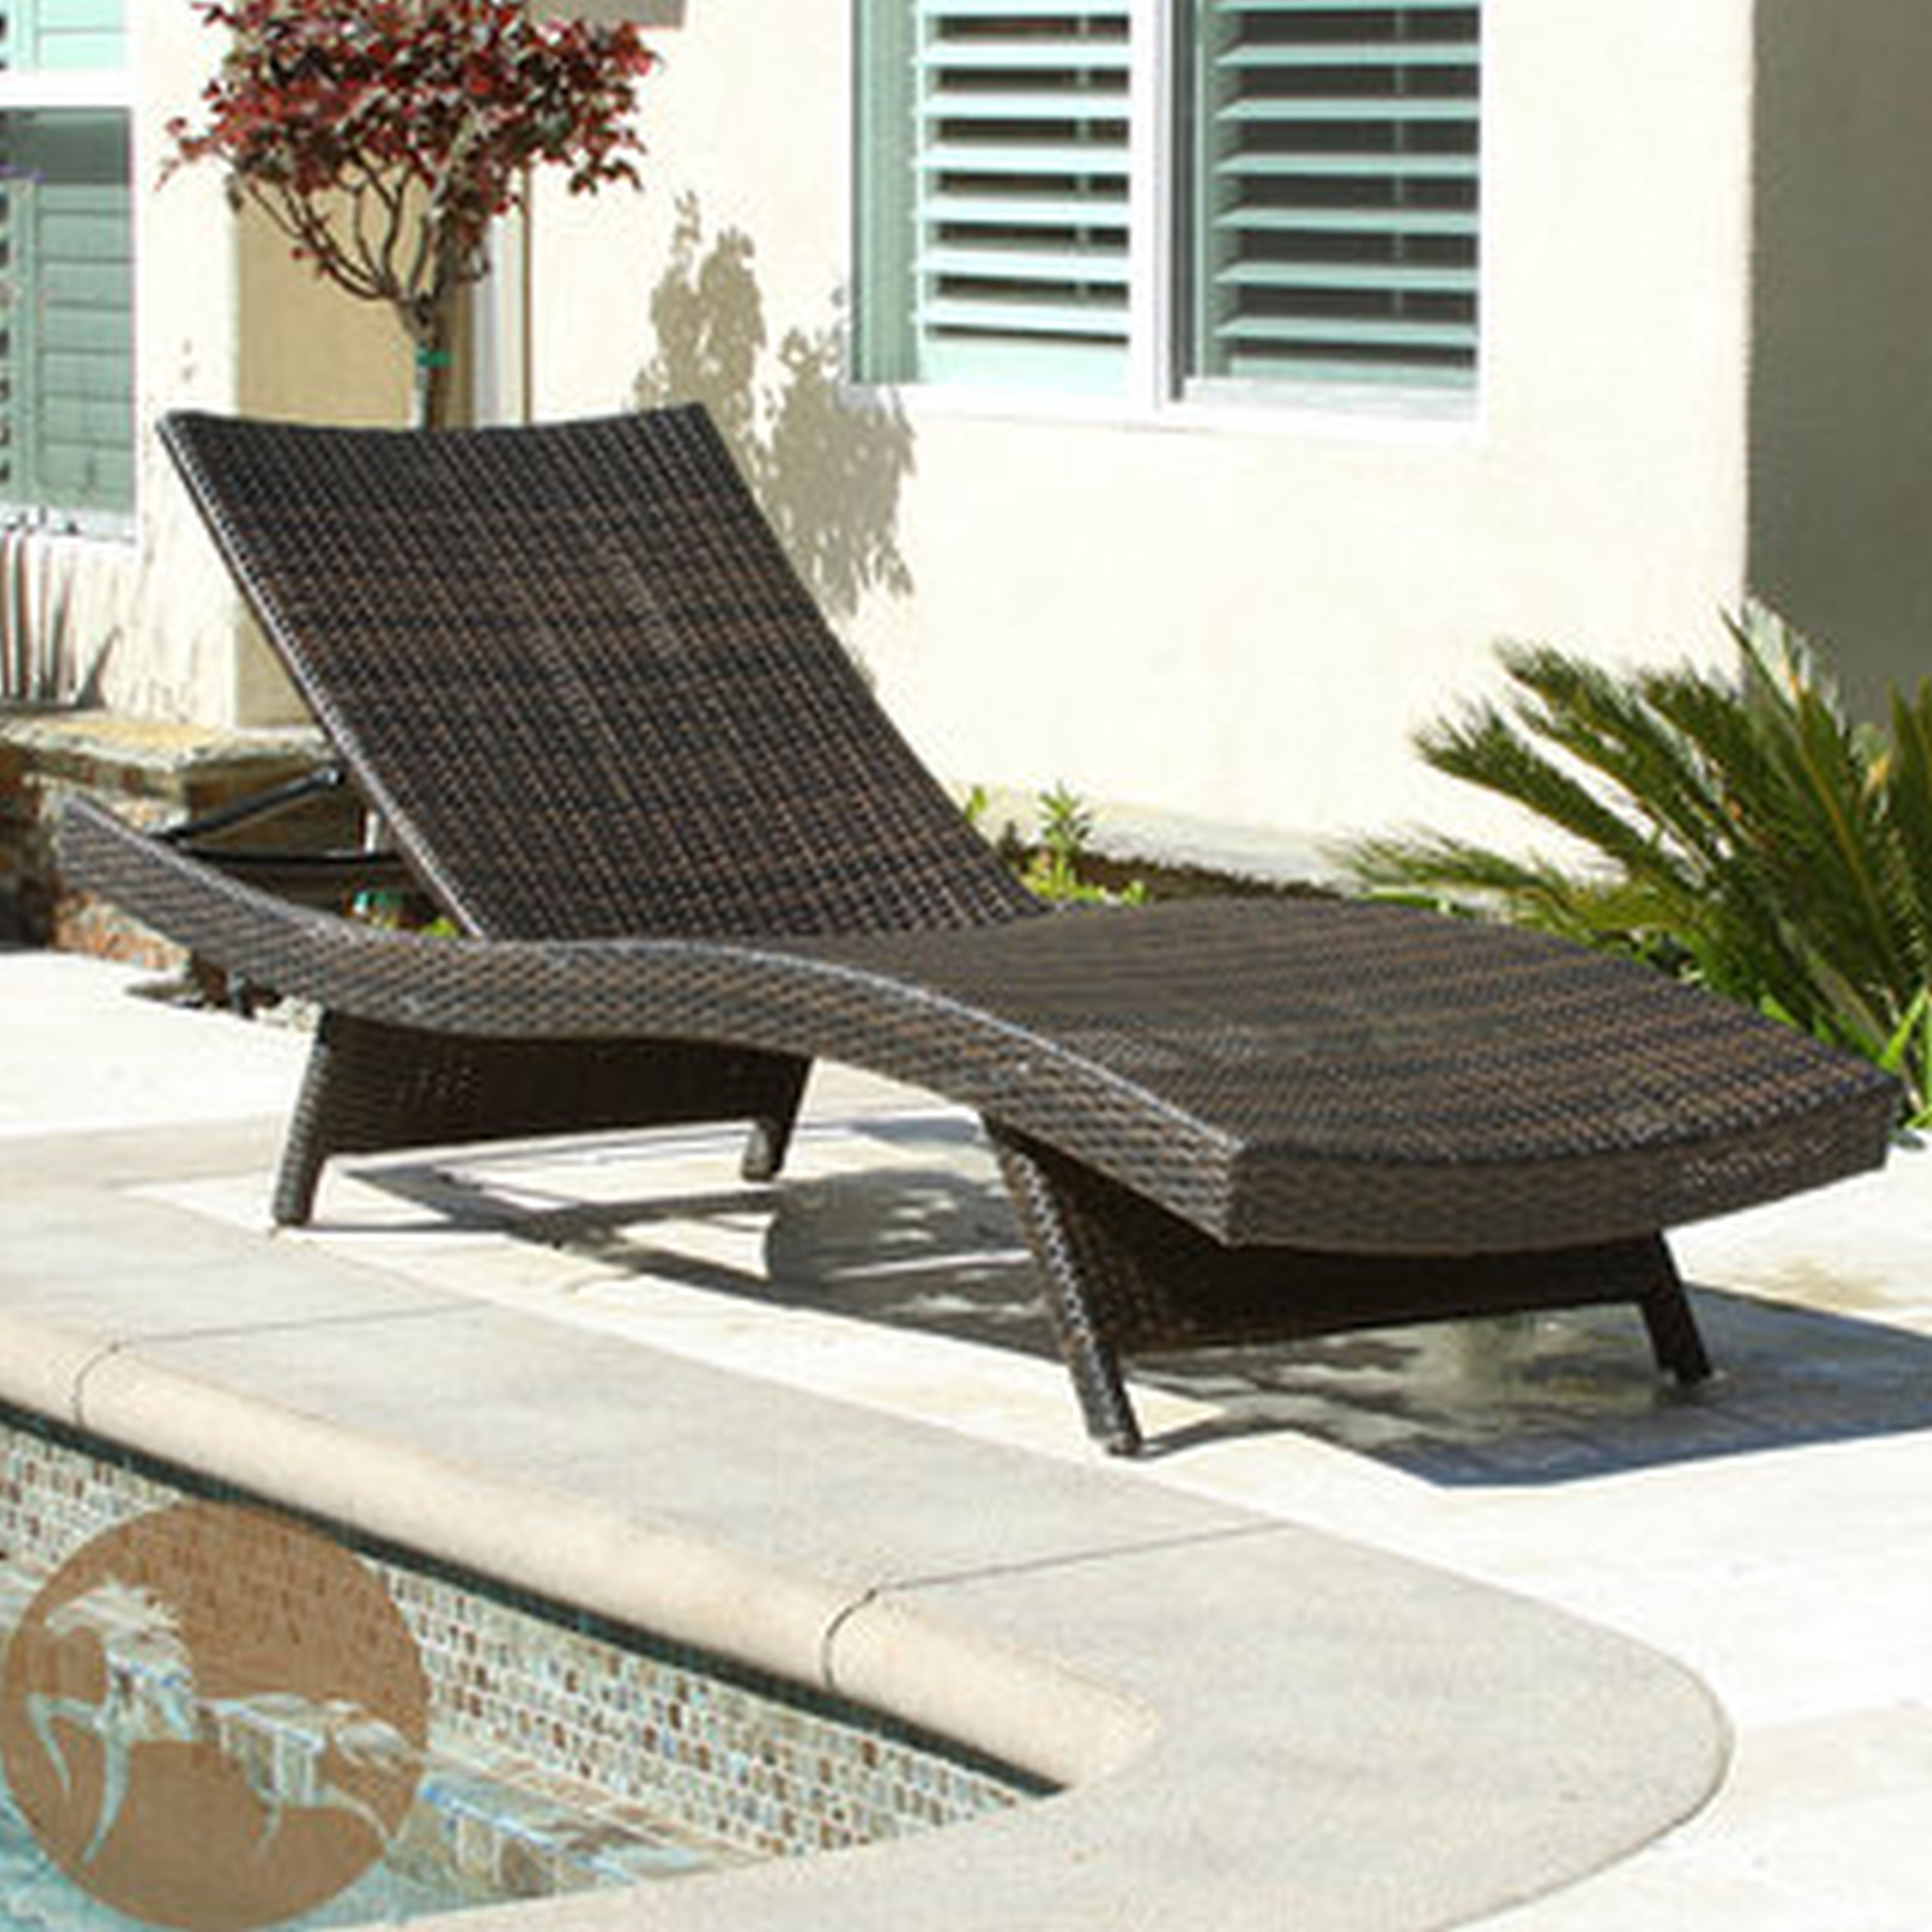 Newest Outdoor : Chaise Lounge Sofa Lowes Patio Furniture Clearance In Double Chaise Lounge Outdoor Chairs (View 8 of 15)